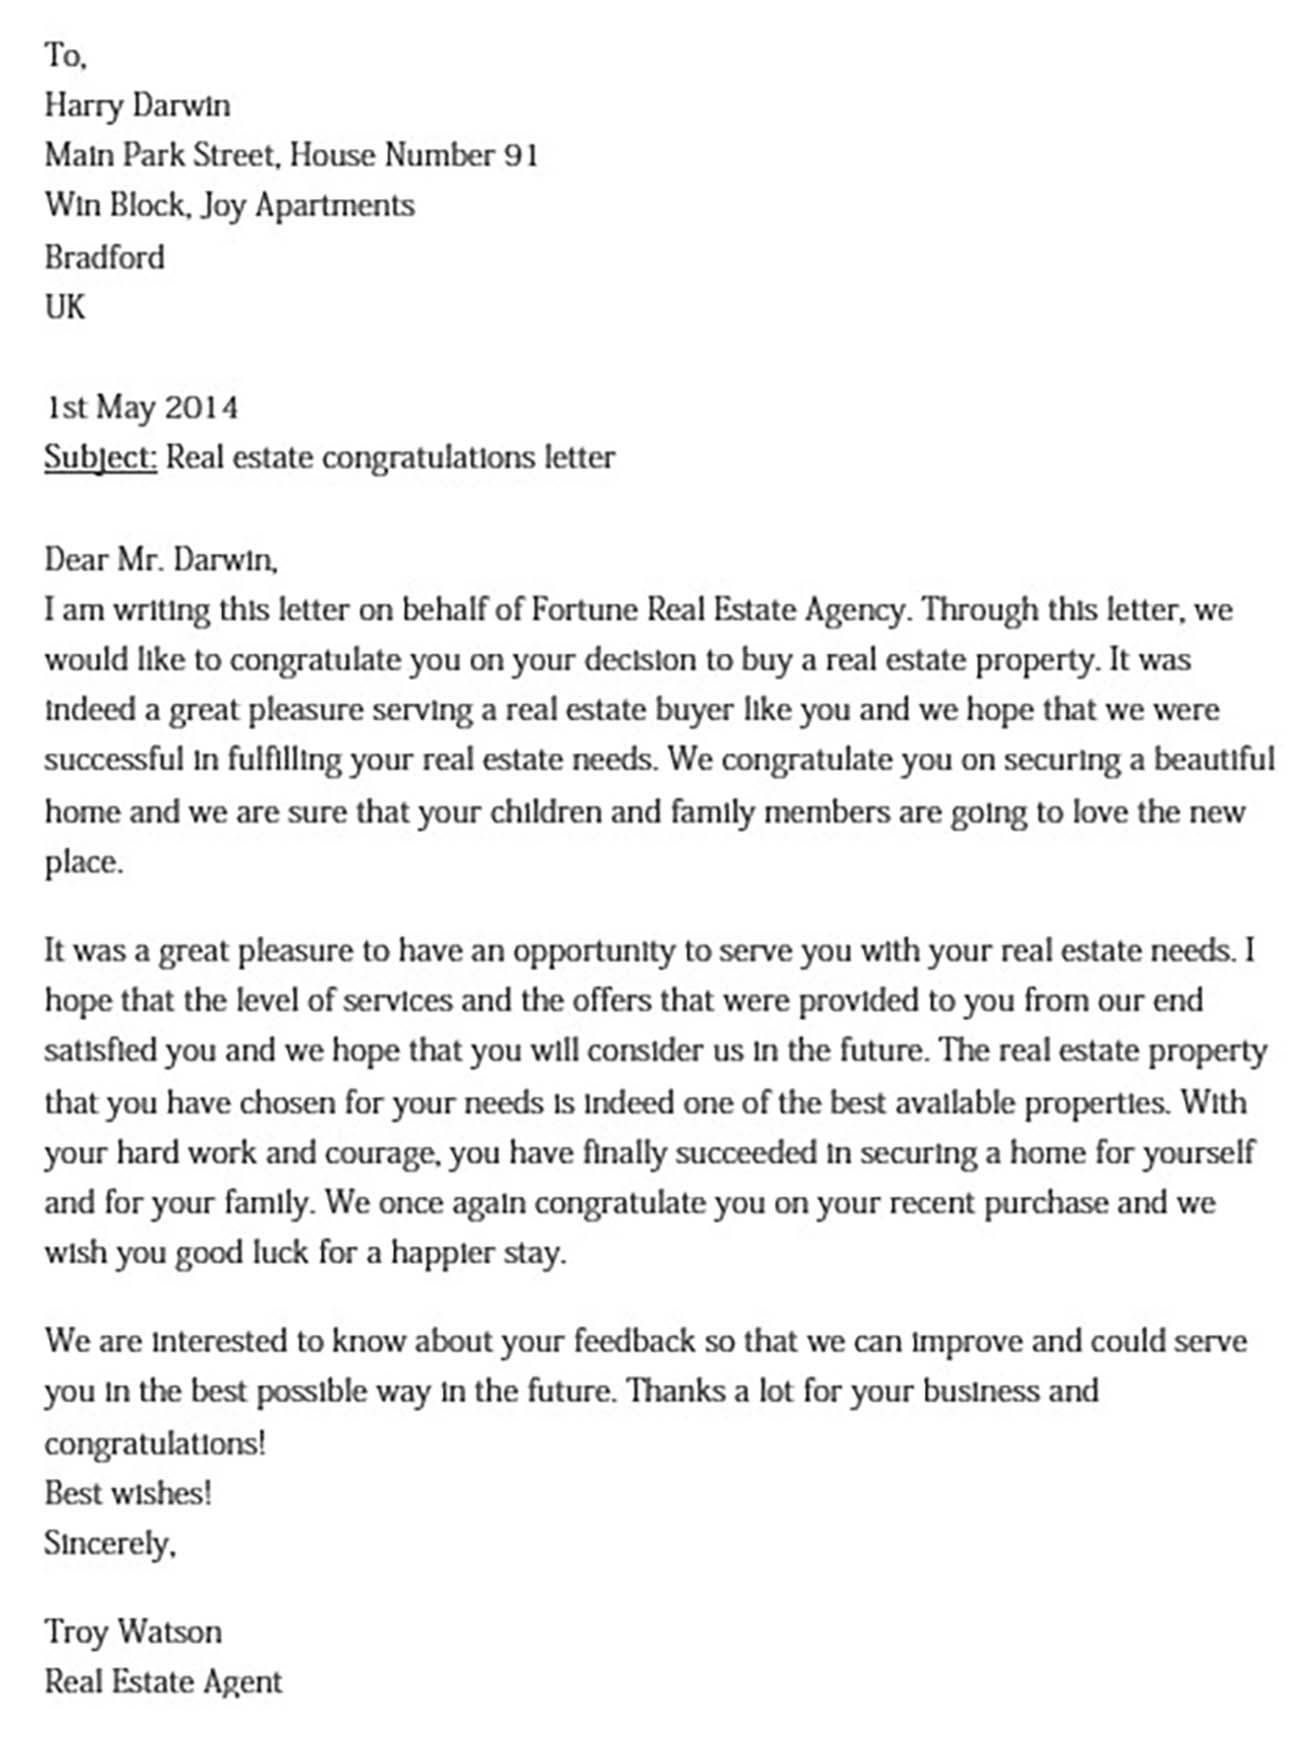 Real Estate Offer Letter And How To Write It Best Check More At Https Moussyusa Com Real Estate Offer Letter Lettering Write To Me Real Estate Agency